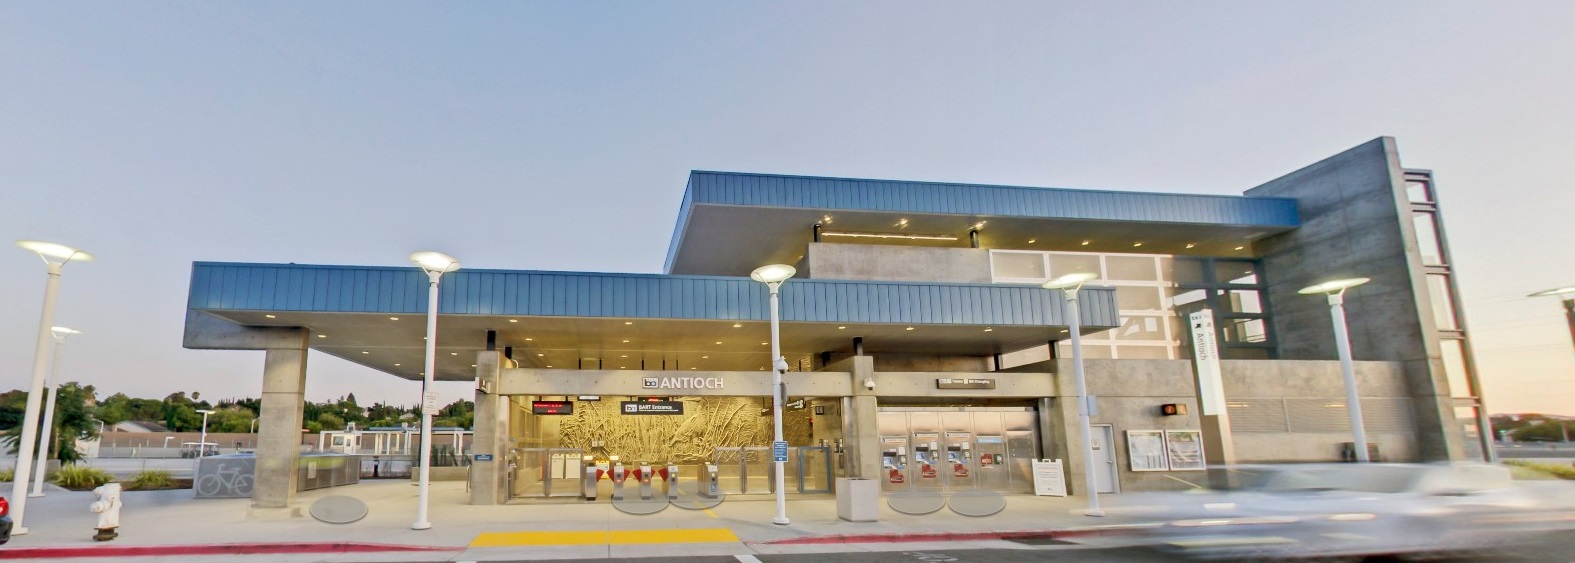 Image of the front facade of the Antioch BART Station